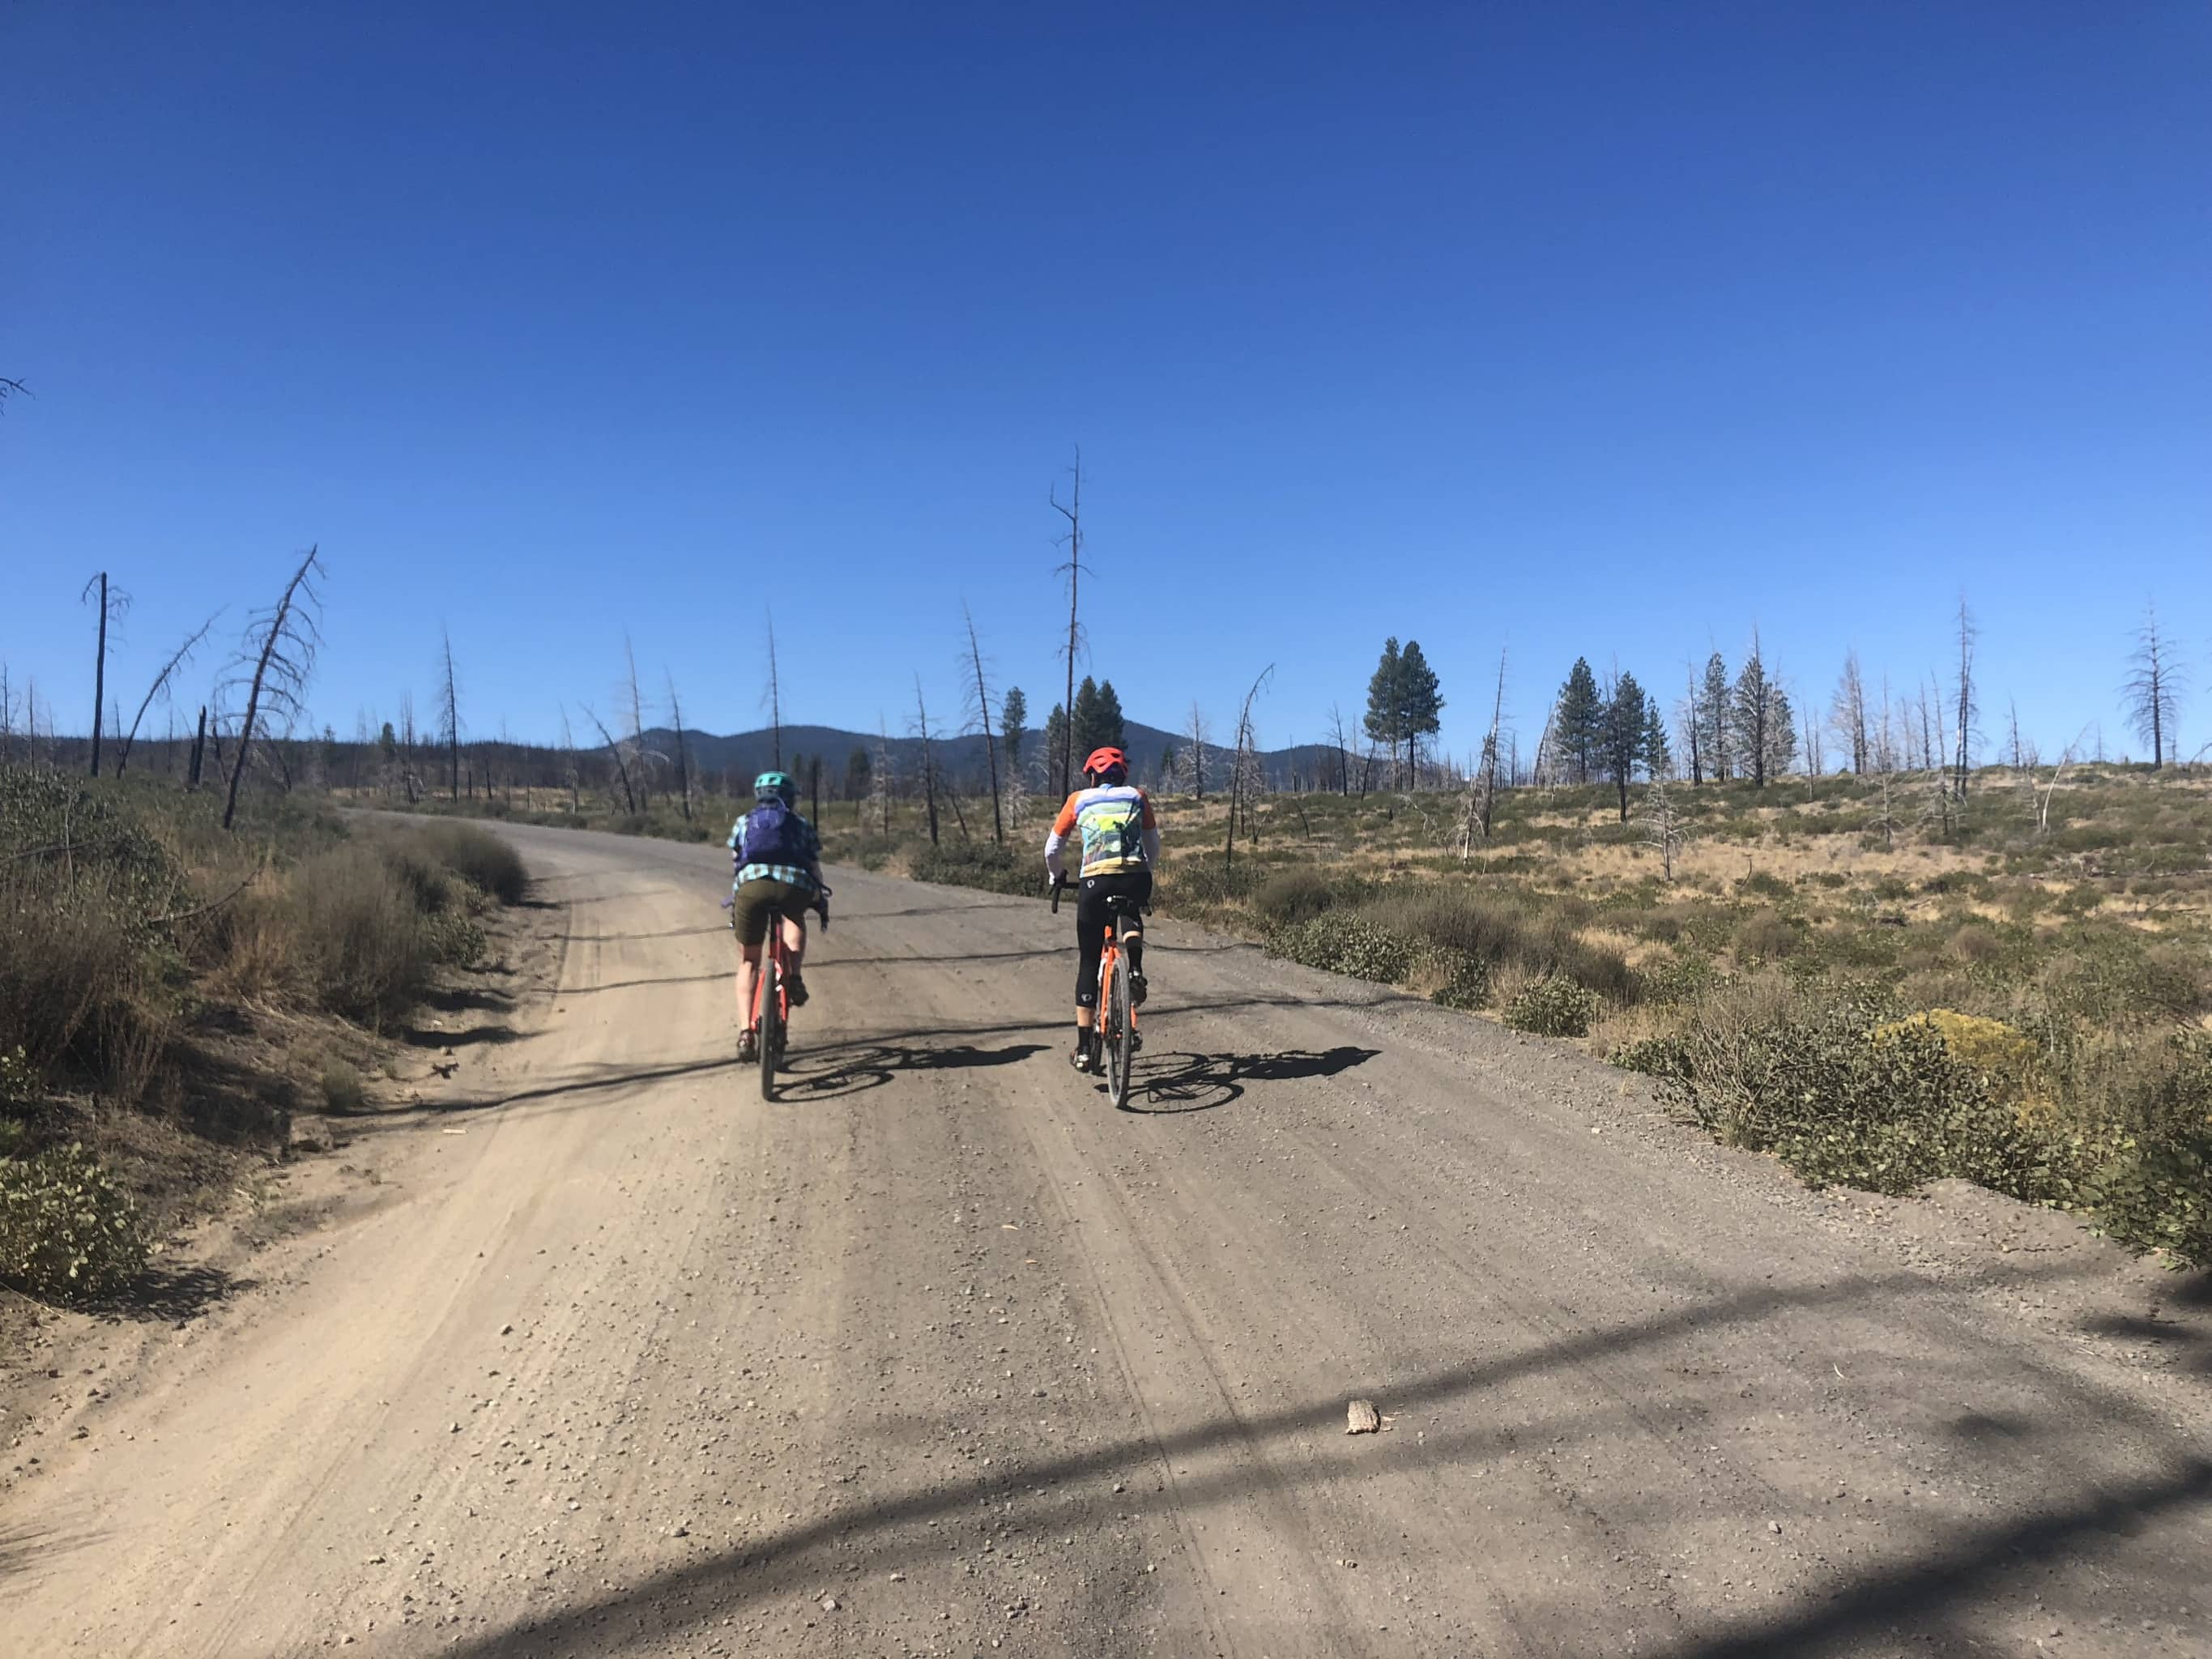 Cyclists descending hard-packed gravel road in Skyline Forest.